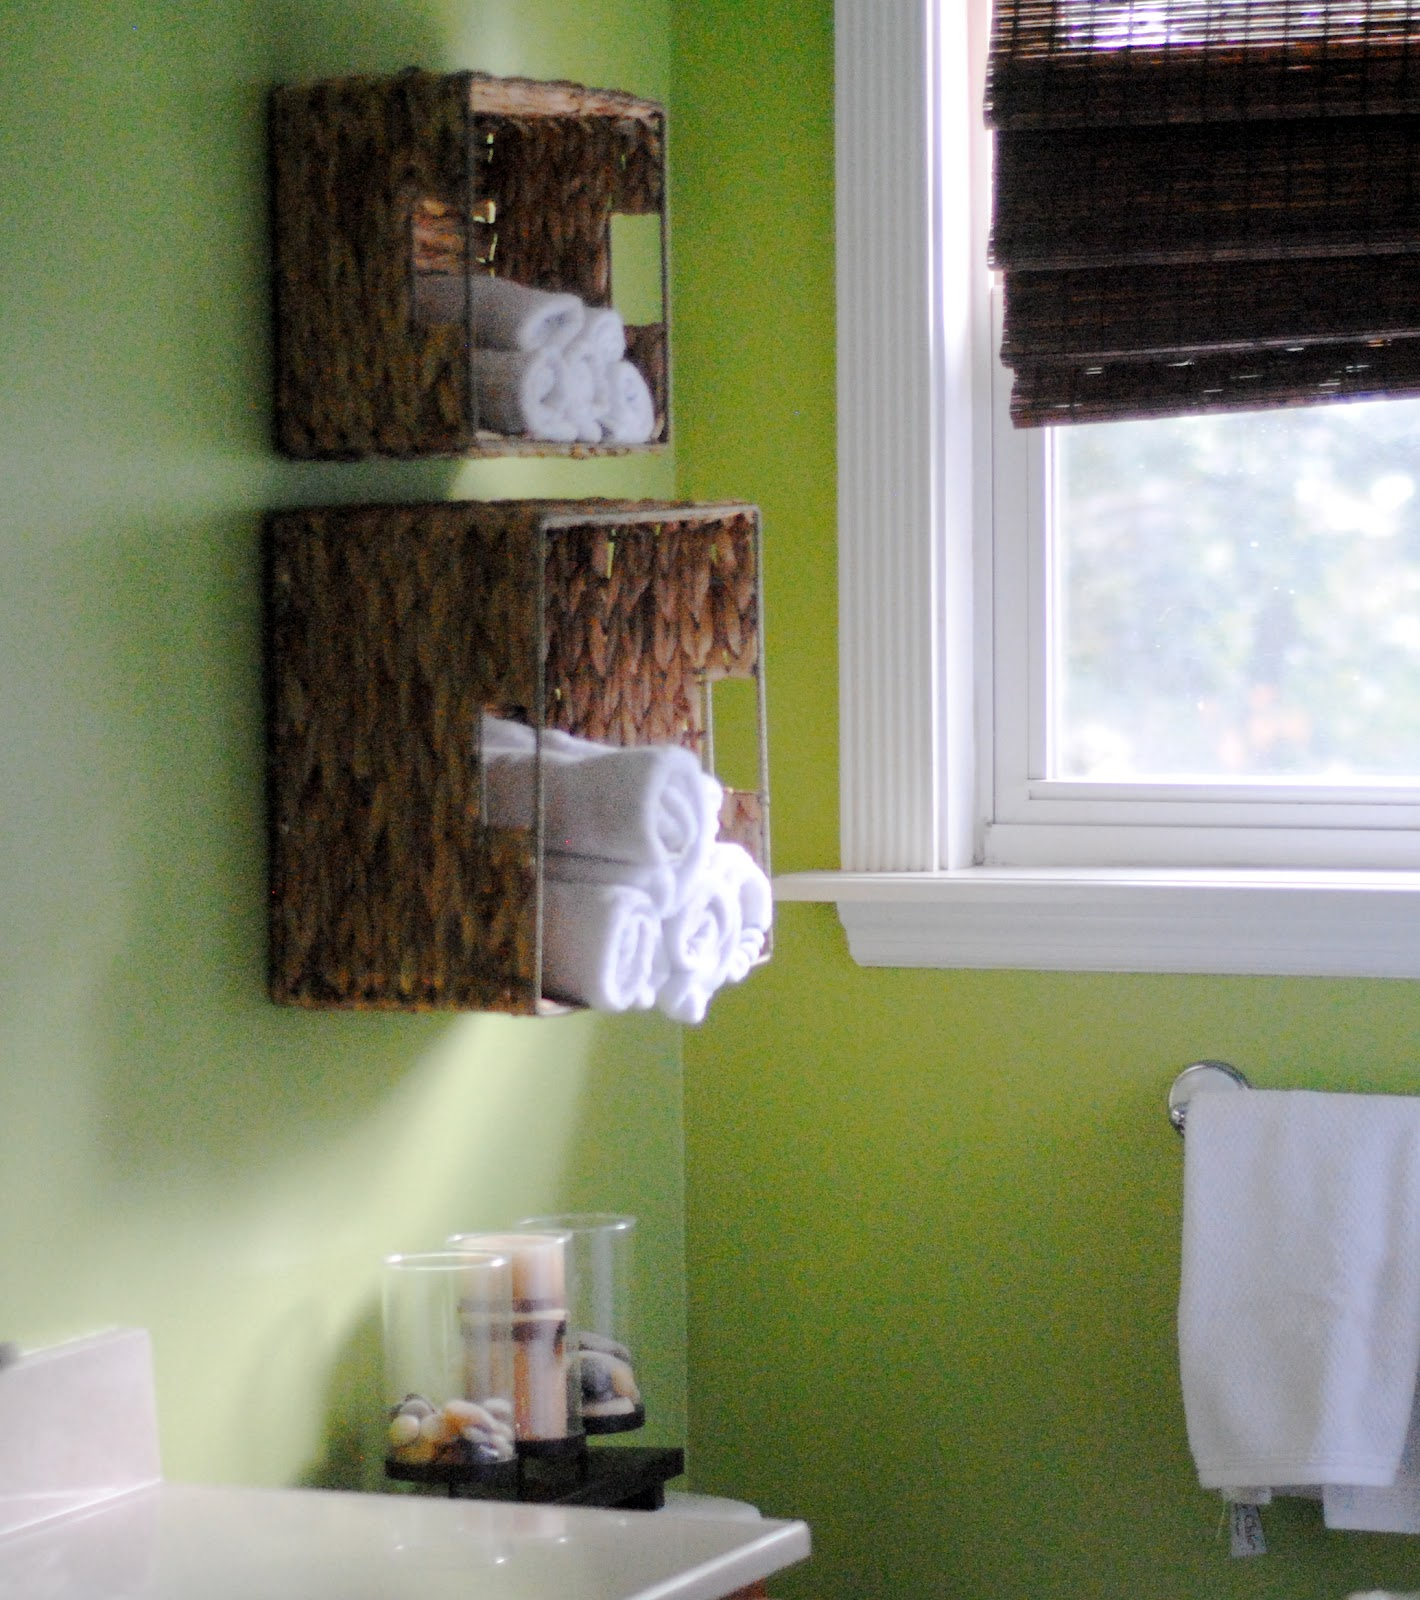 Bathroom storage for towels - Easy Bathroom Towel Storage Idea